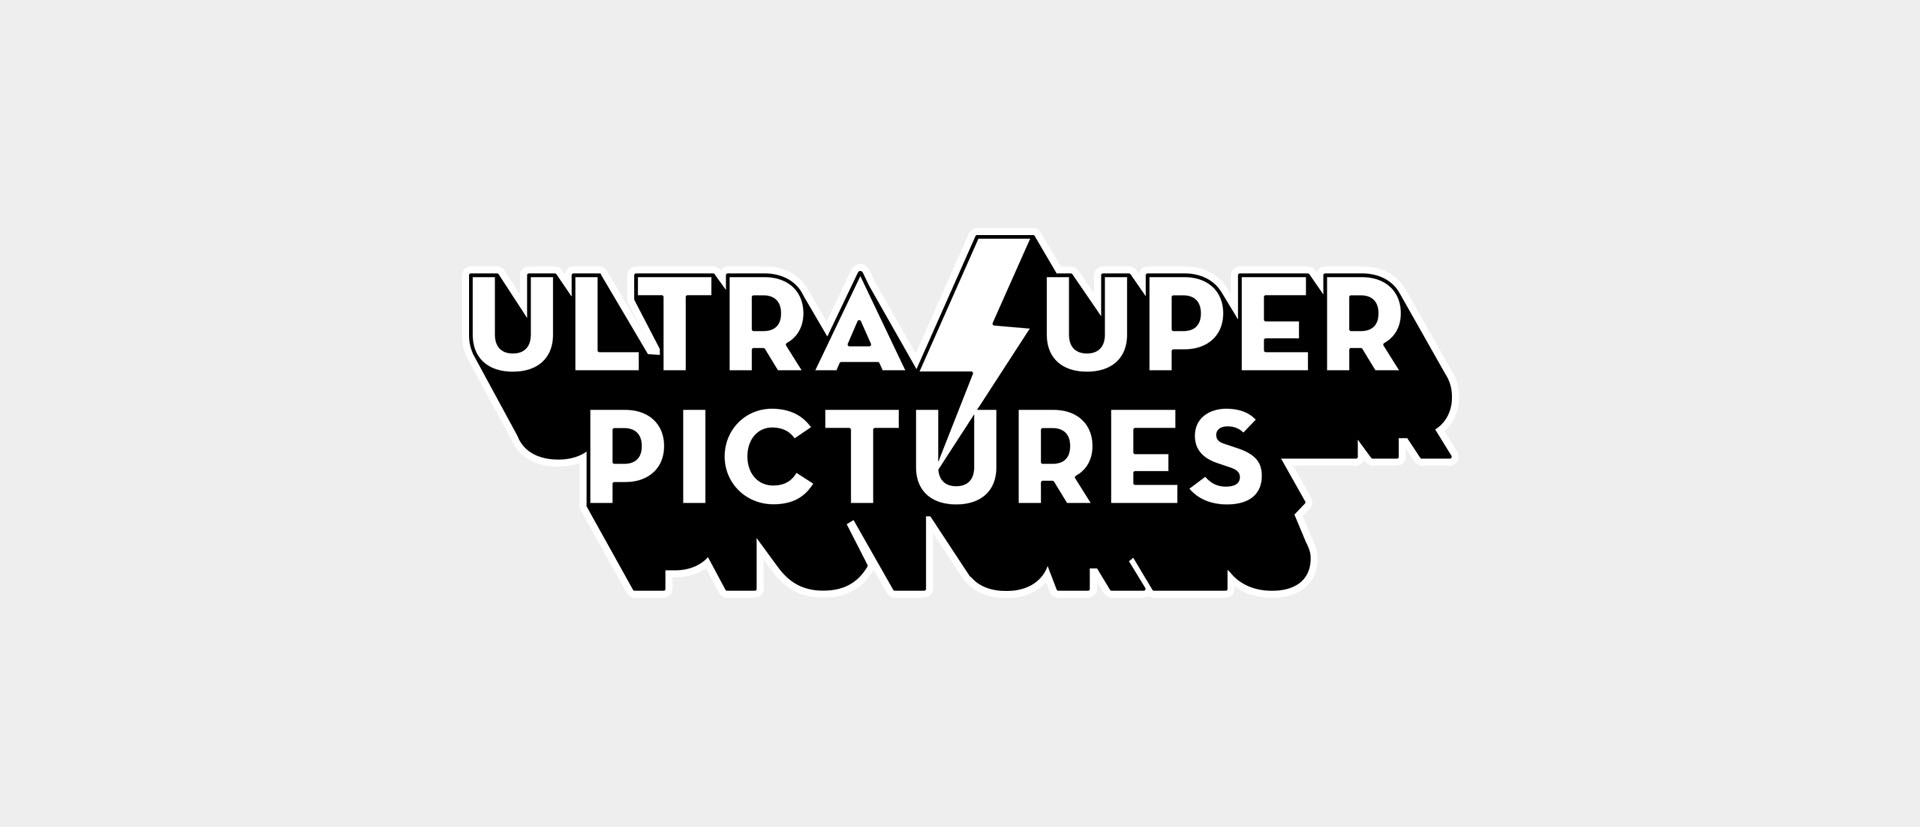 ULTRA SUPER PICTURES 1